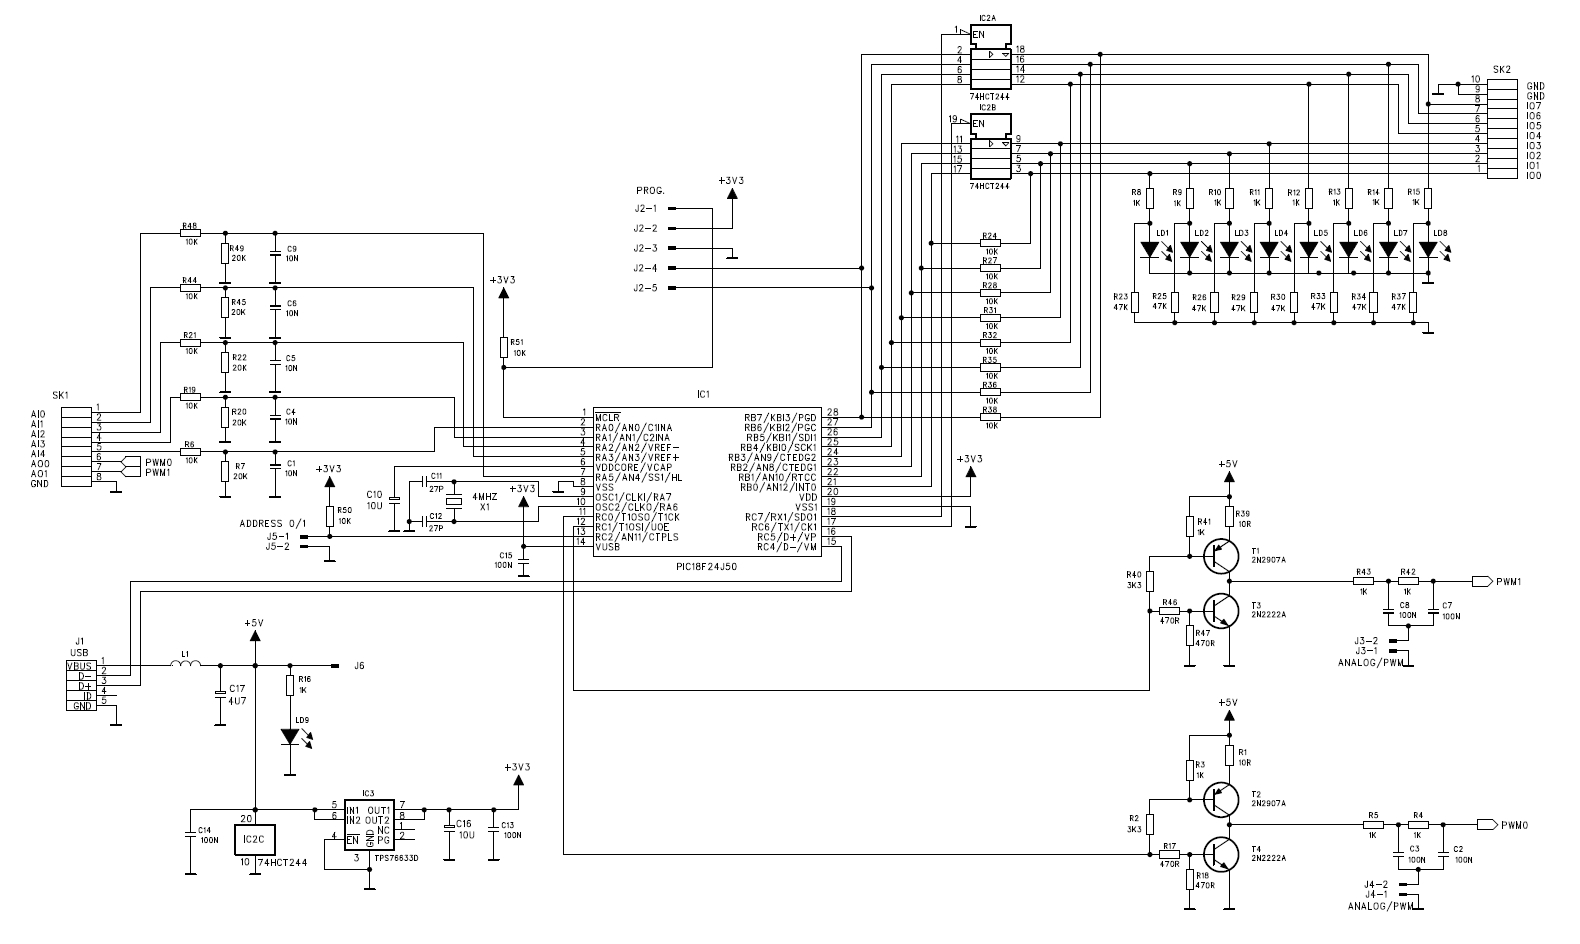 Vm167 Firmware And Schematic Diagram Of The Board